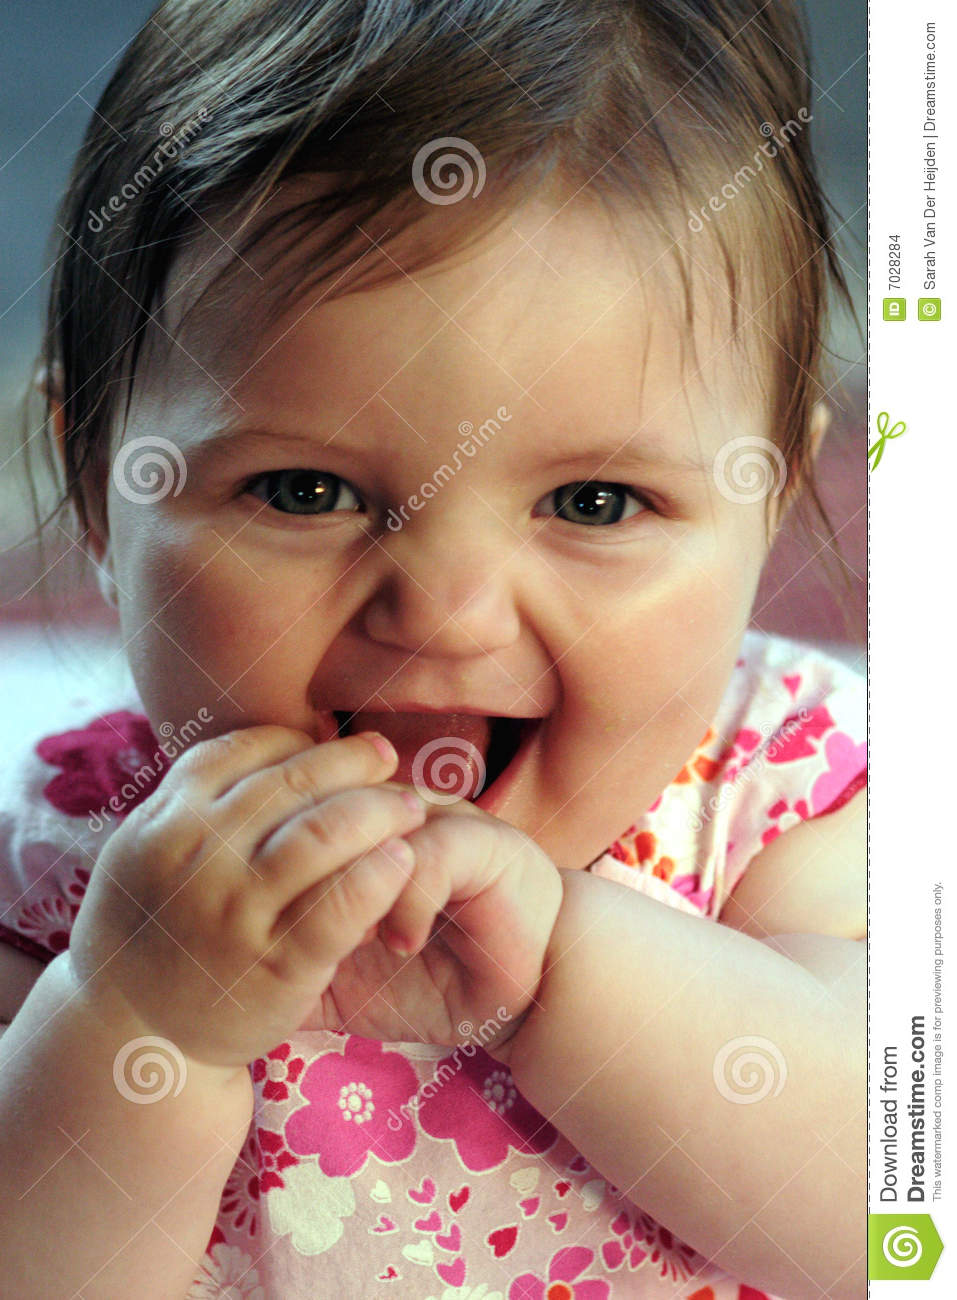 Cute Baby Girl Smiling Stock Images  Image 7028284